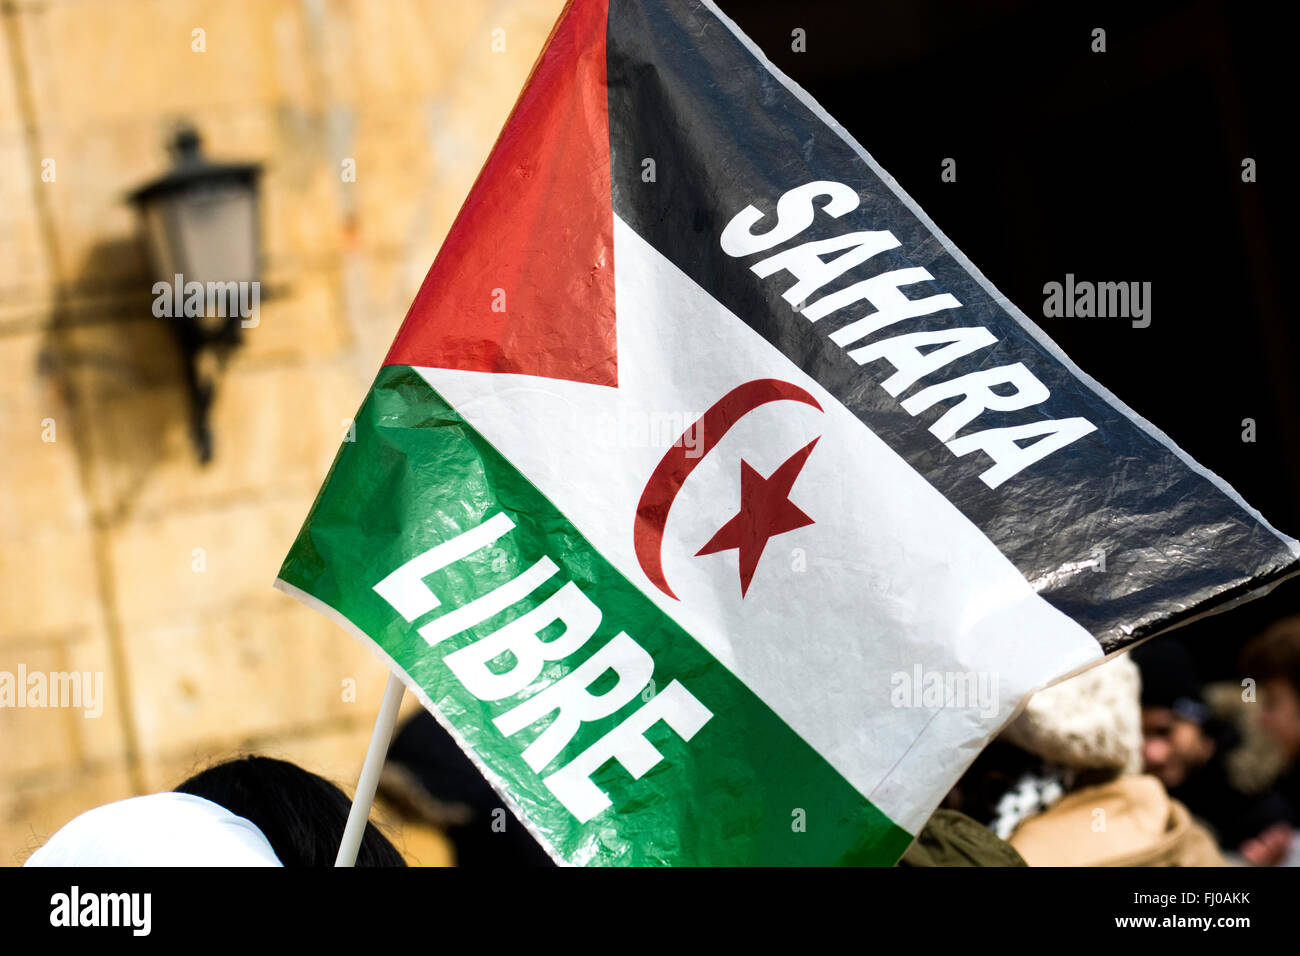 Oviedo, Spain. 27th February, 2016. Flag of Sahrawi Arab Democratic Republic during the European march in favor - Stock Image